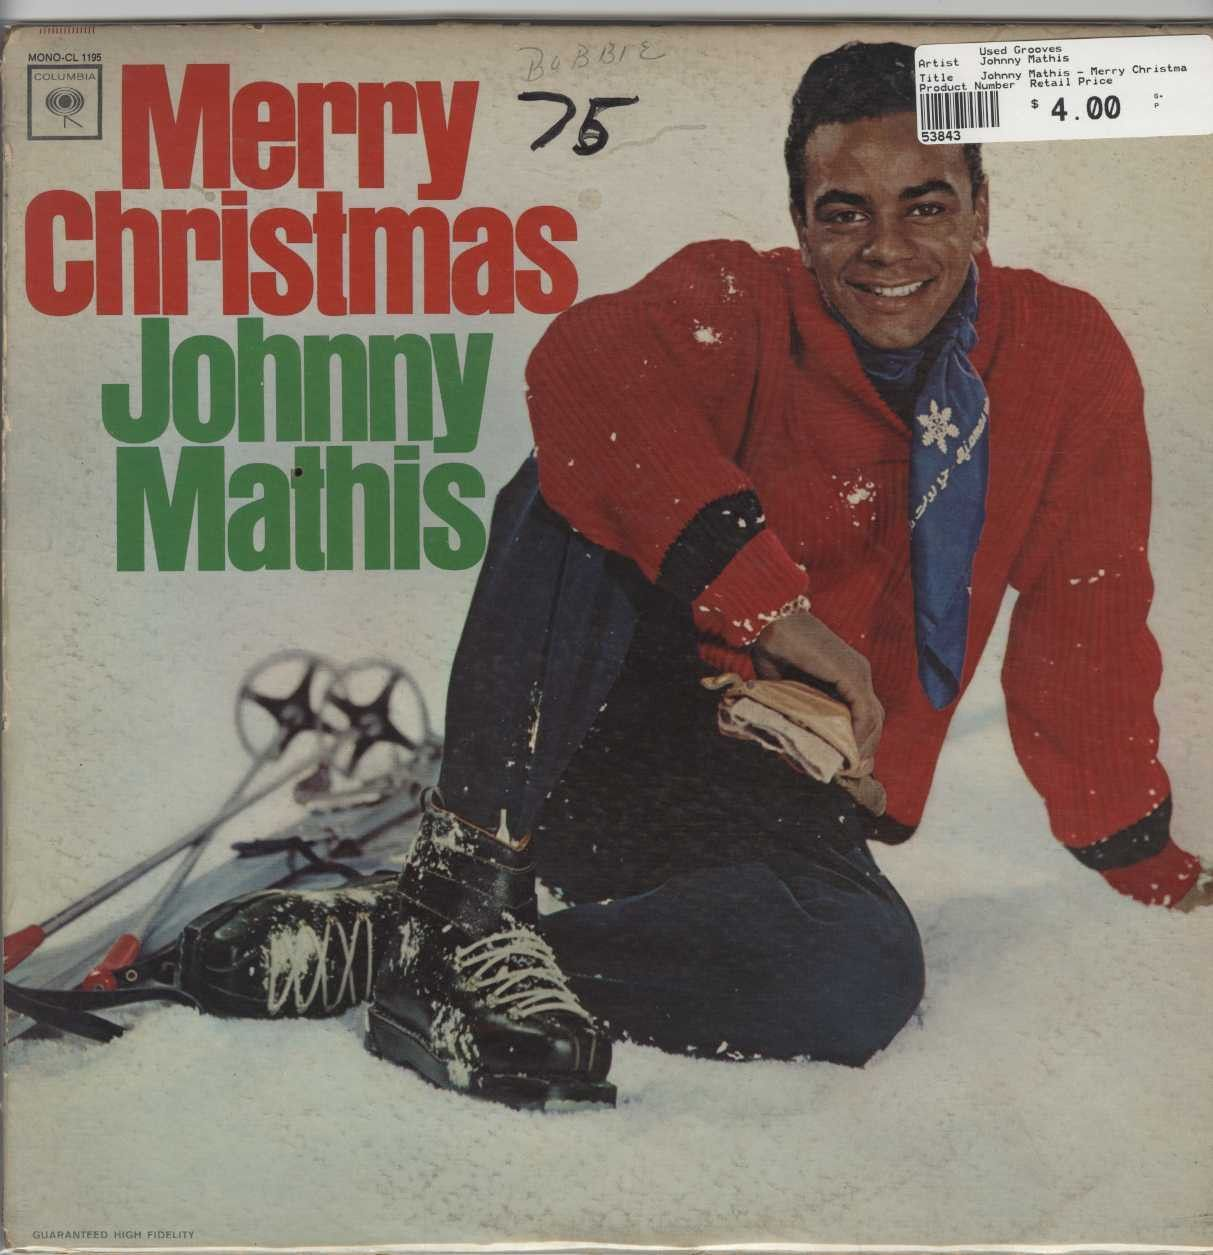 Johnny Mathis - Merry Christmas | Pinterest | Johnny mathis and Products